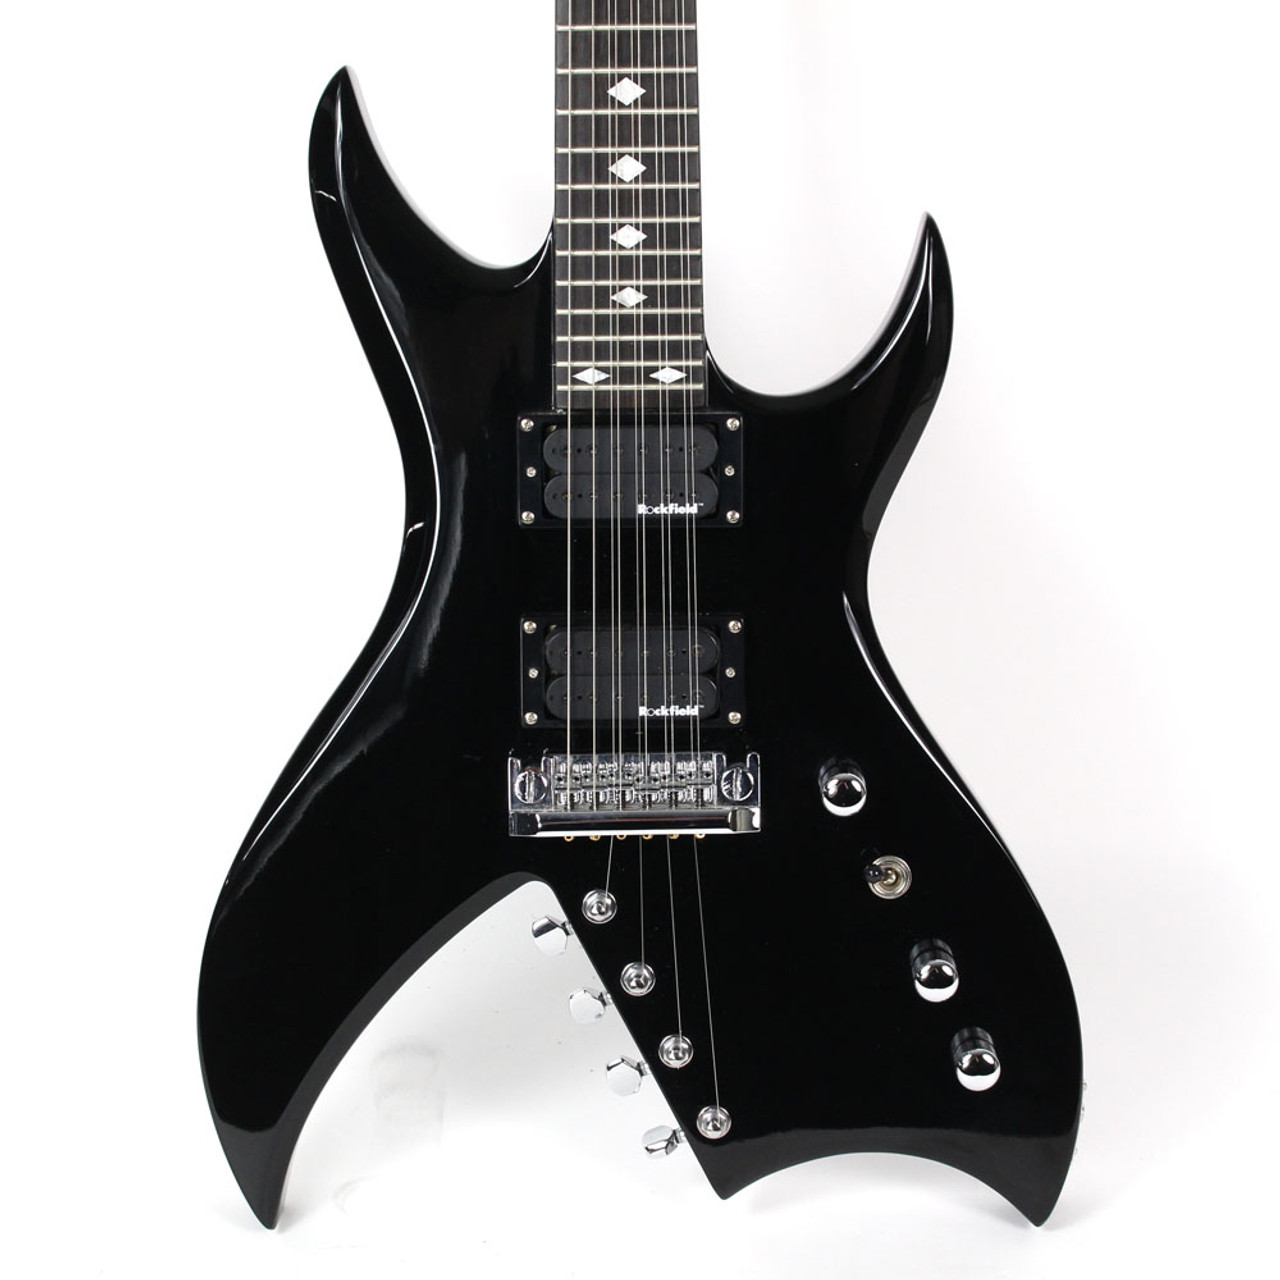 used bc rich bich 10 string electric guitar black cream city music. Black Bedroom Furniture Sets. Home Design Ideas